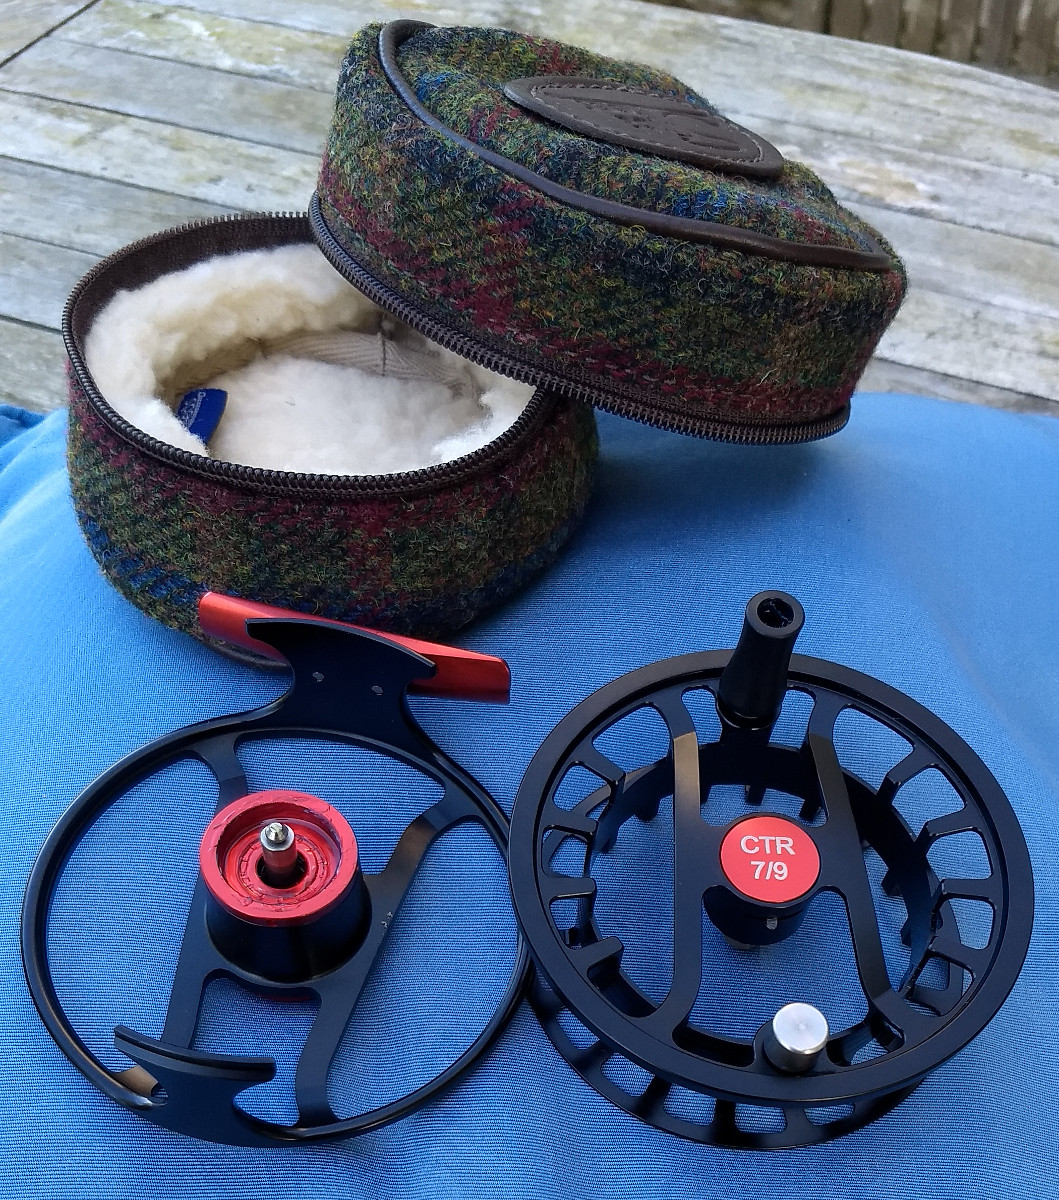 CTR 7/9 Fly fishing reel